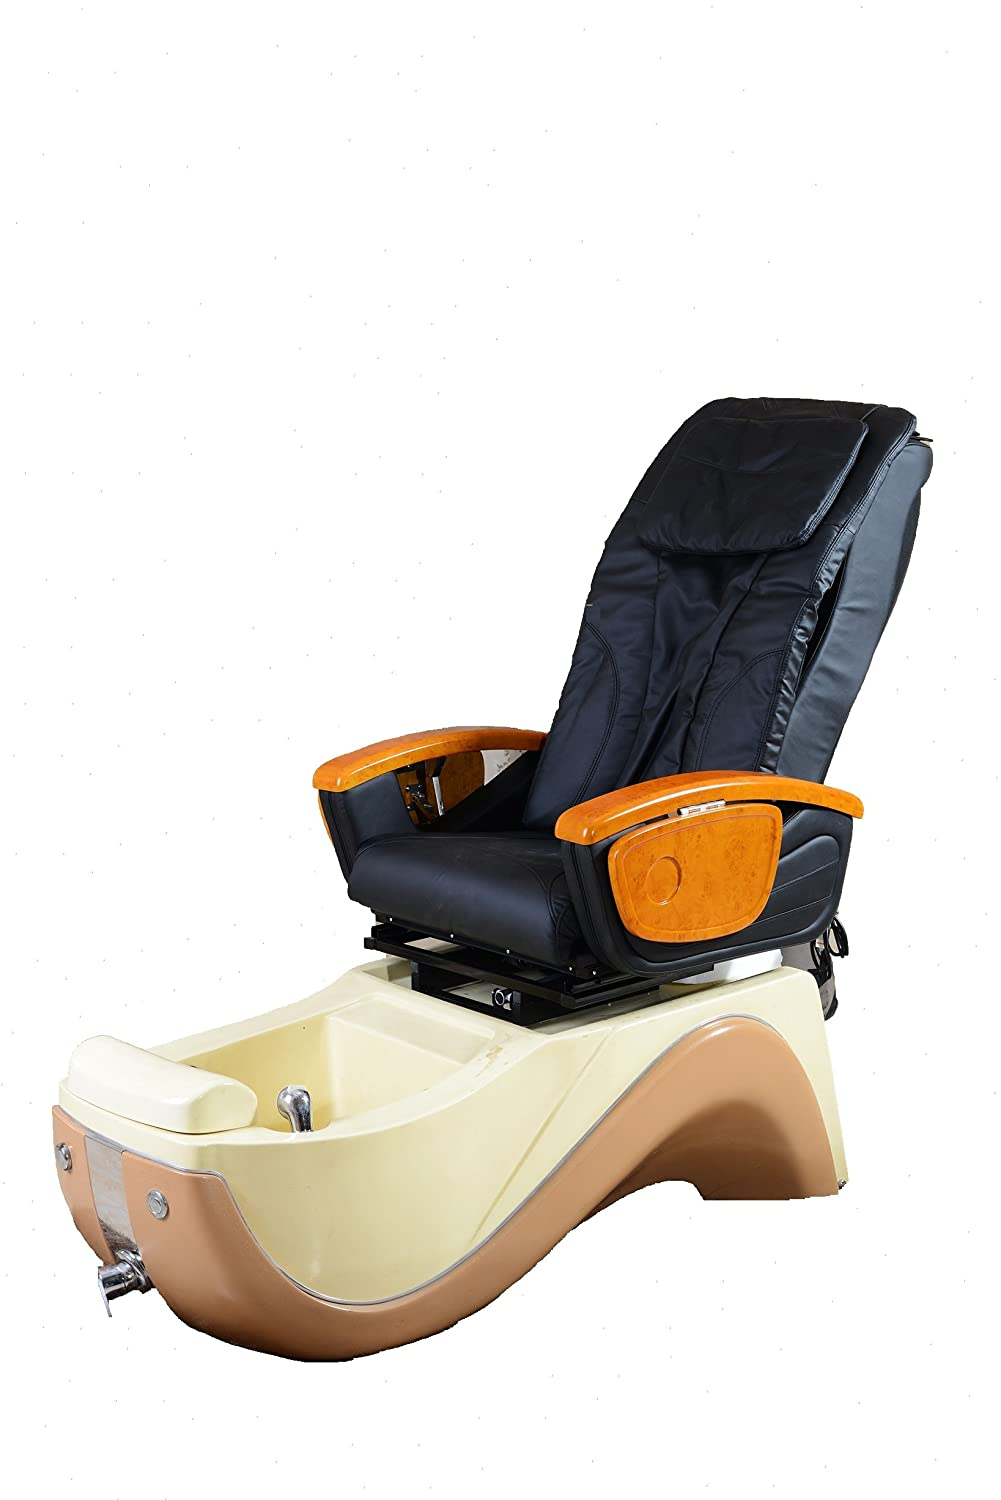 Silla Pedicura Spa pedispa masaje: Amazon.es: Belleza